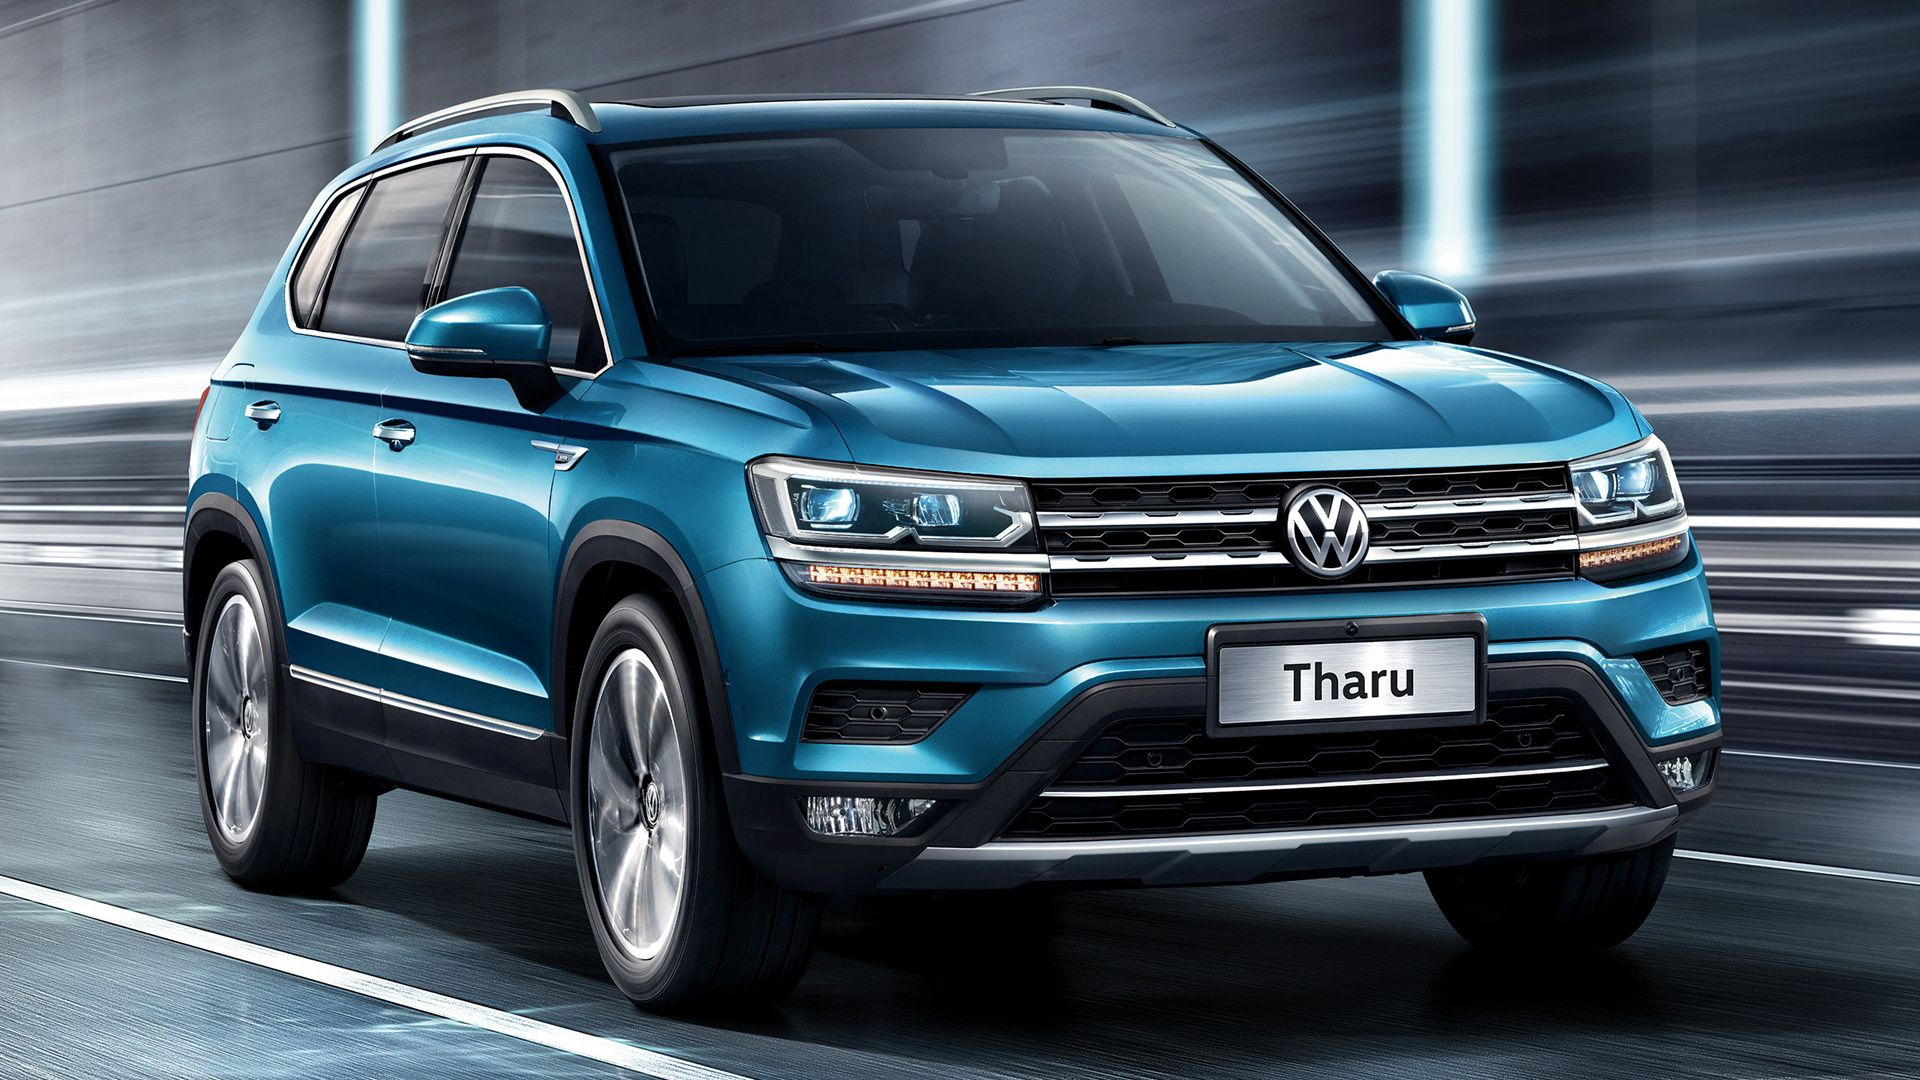 Vehicles Volkswagen Tharu Volkswagen Suv Blue Car Car Hd Wallpaper Background Imageq Wallpaper Cart Volkswagen Car Volkswagen Subcompact